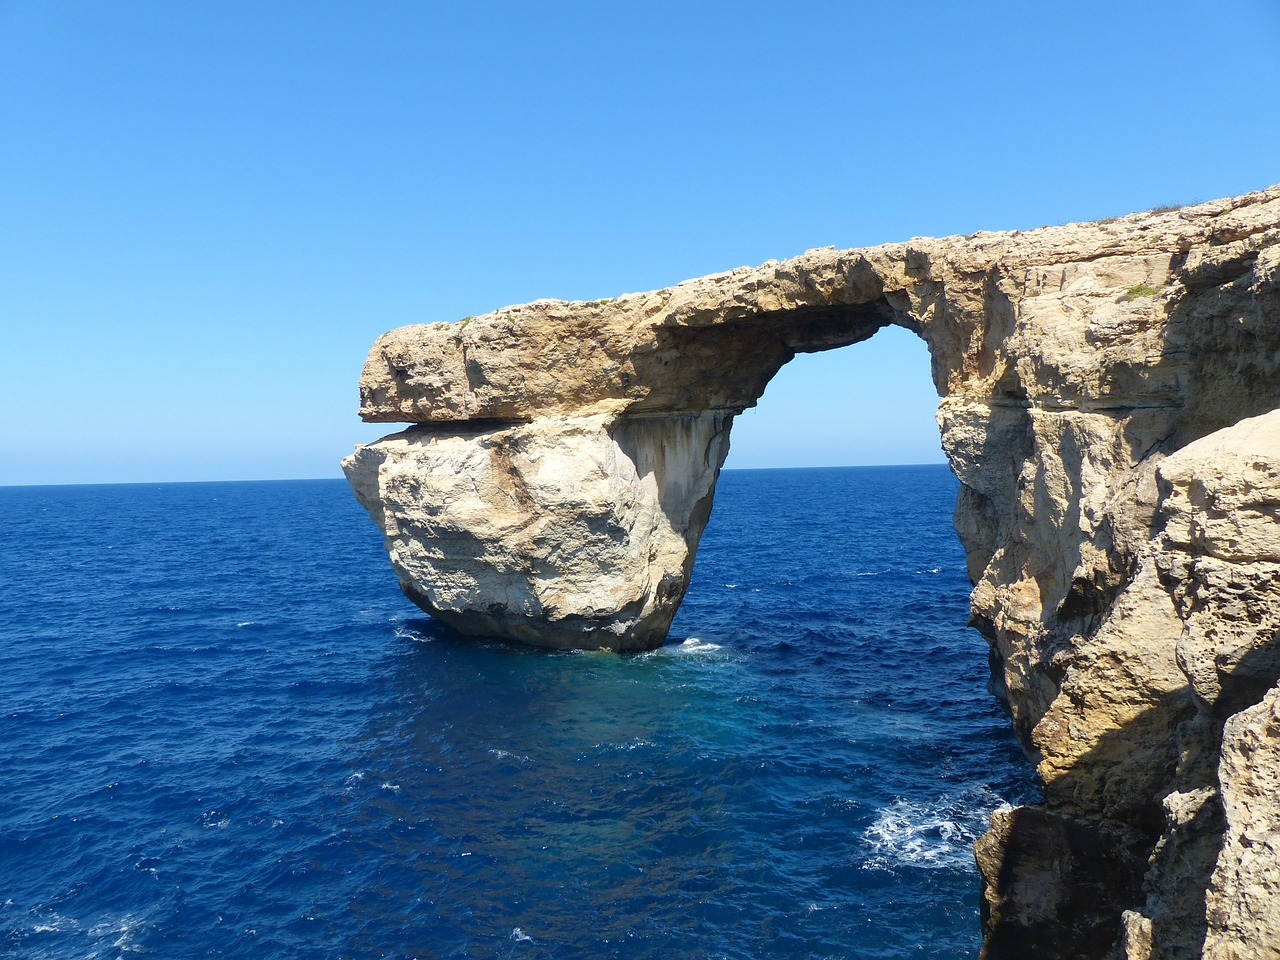 The famous Azure window in Gozo.